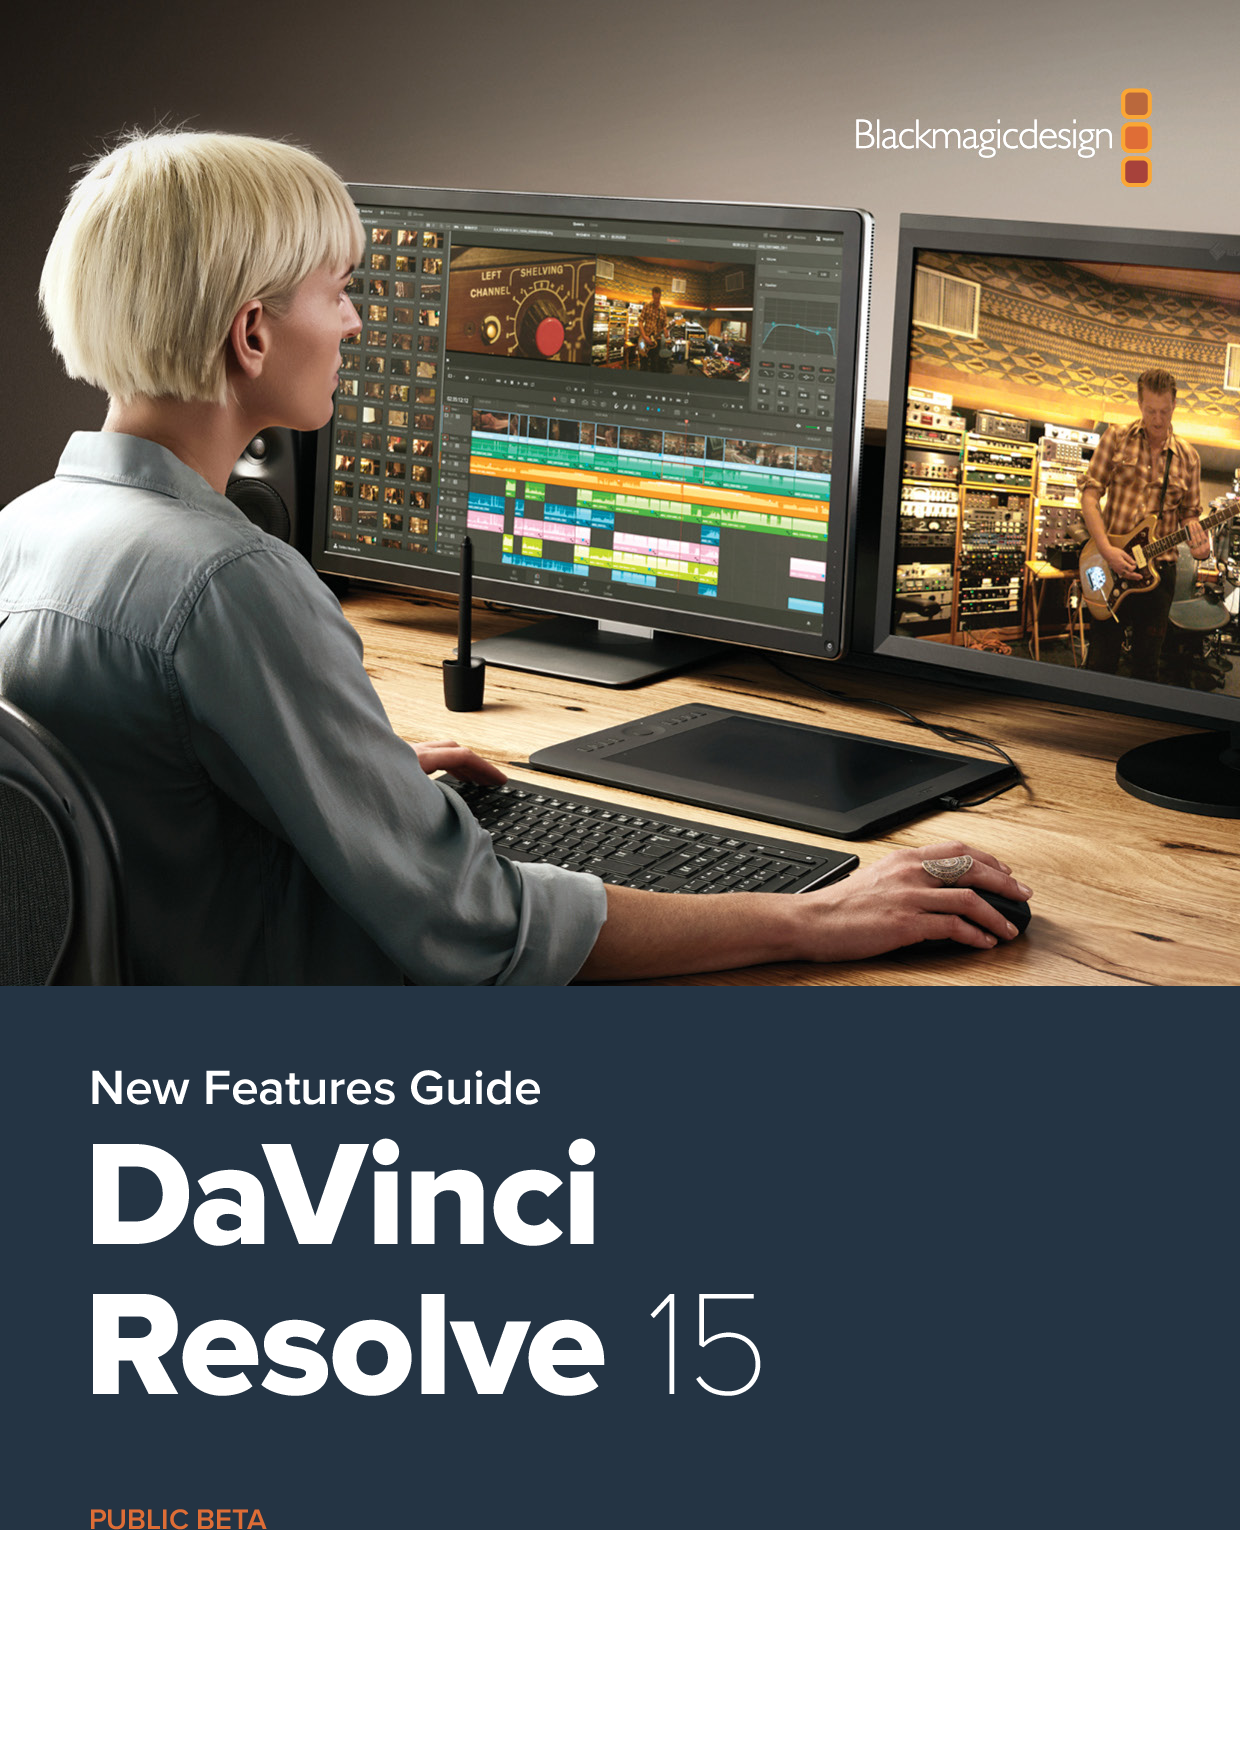 davinci resolve 15 manual espanol pdf